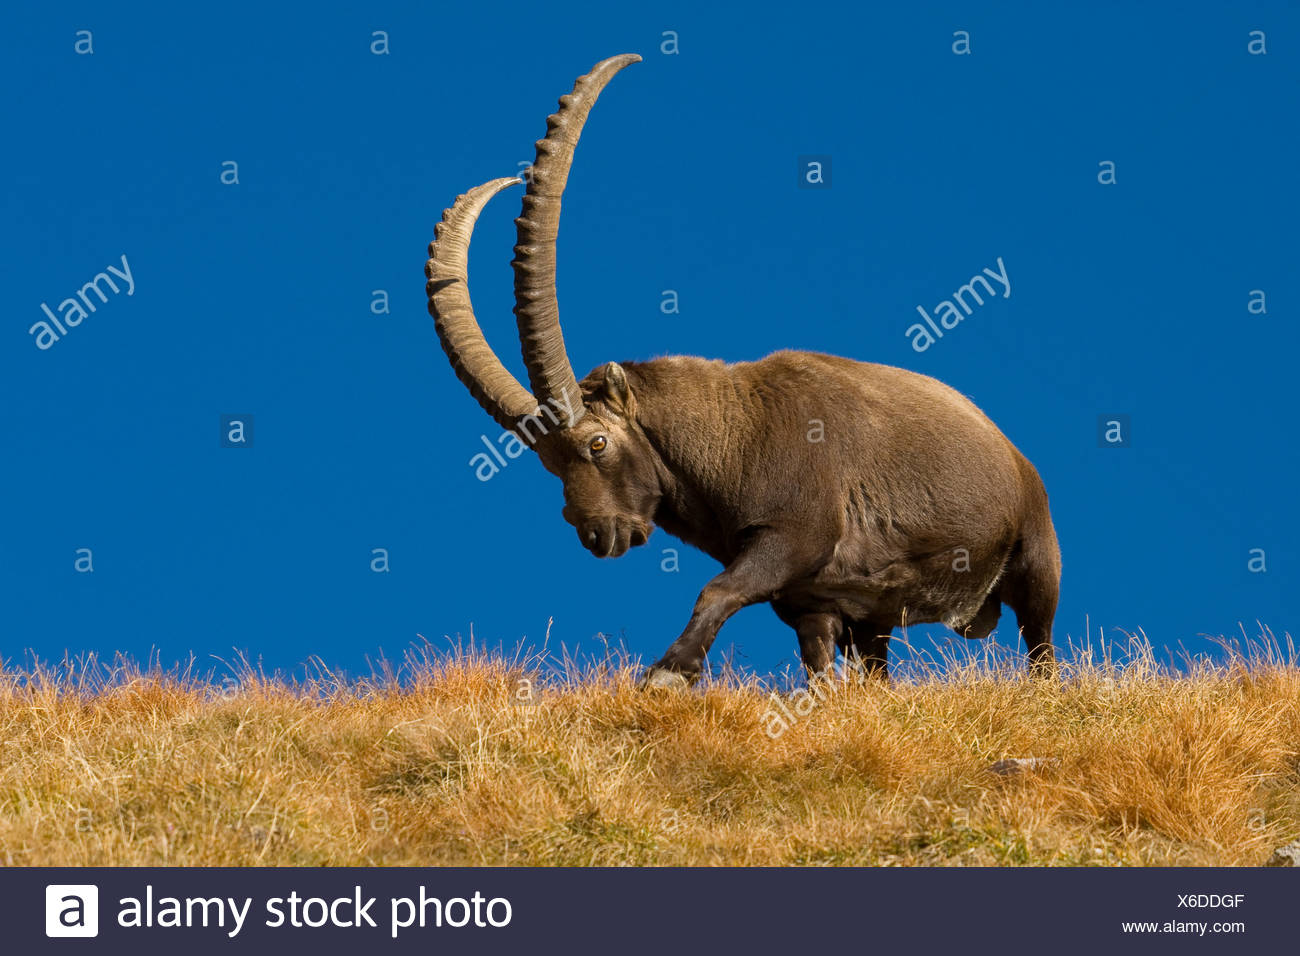 alpine ibex (Capra ibex), mighty male walking over a grass-grown hill ridge in front of a clear blue sky, Switzerland, Sankt Gallen, Alpstein, Saentis - Stock Image